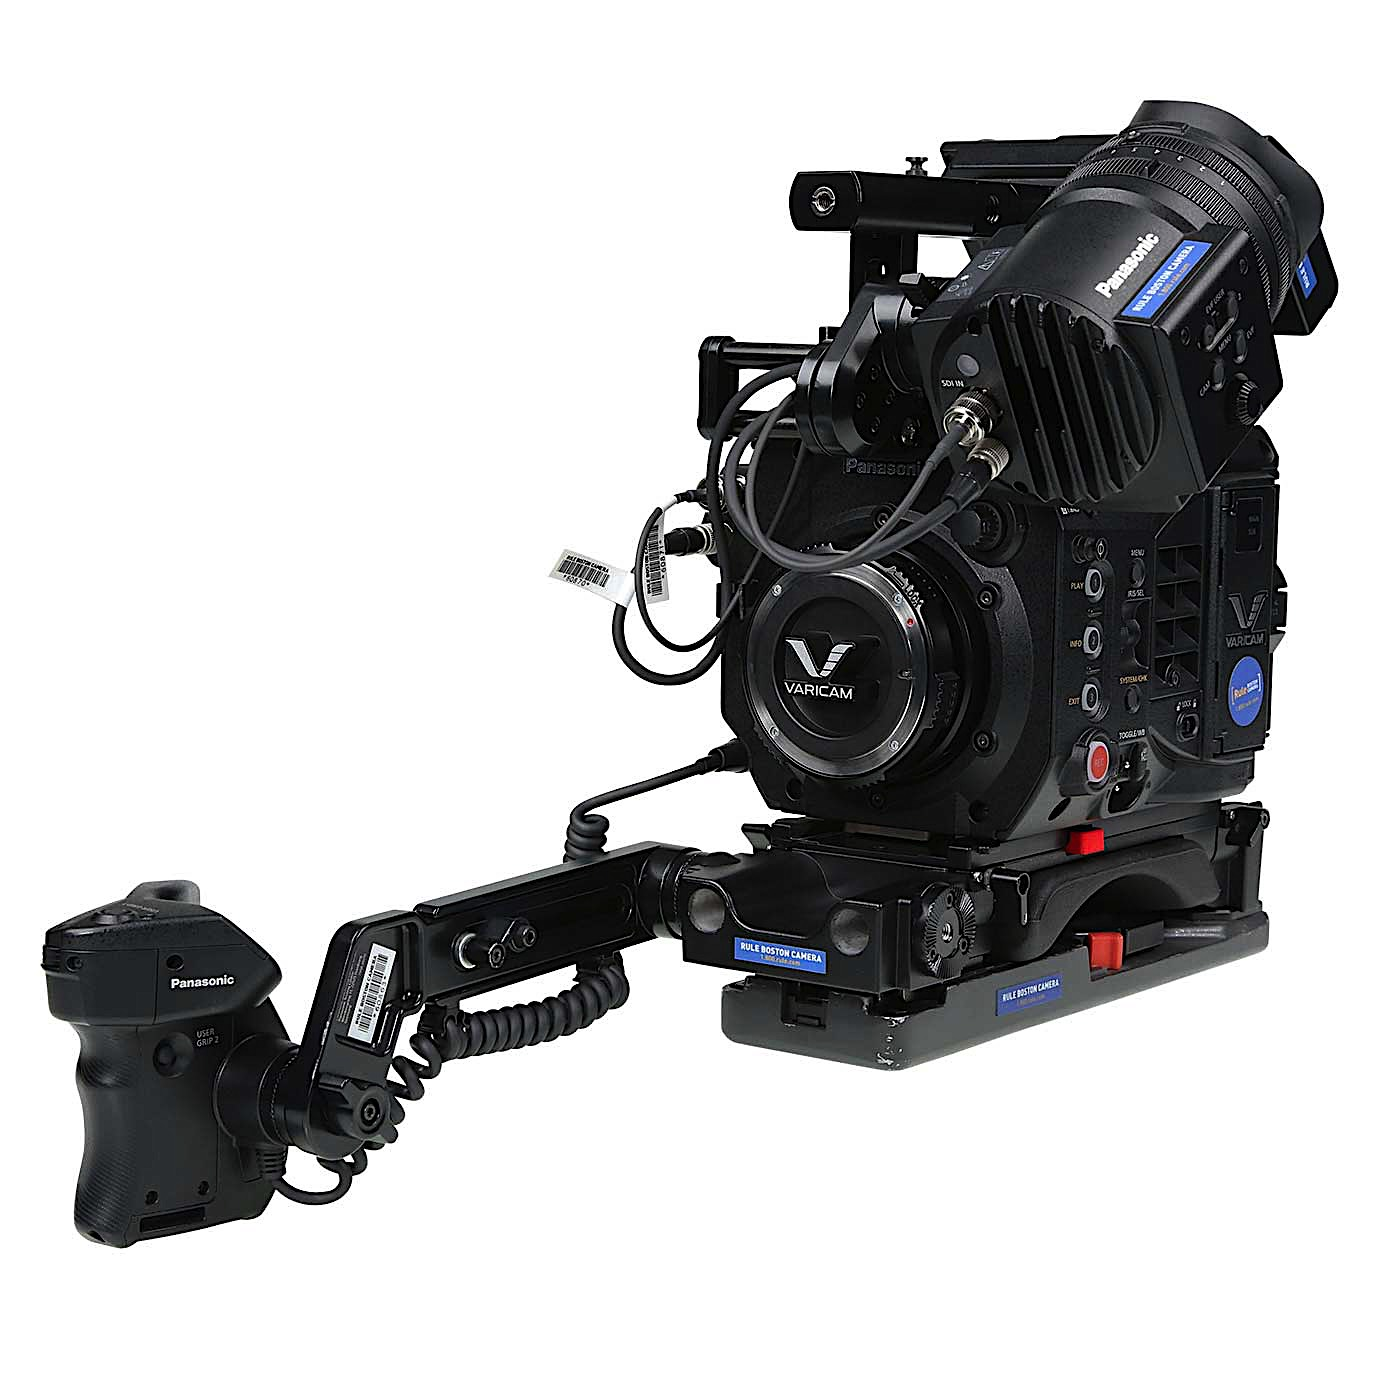 Panasonic VariCam LT 4K Super 35mm Camera